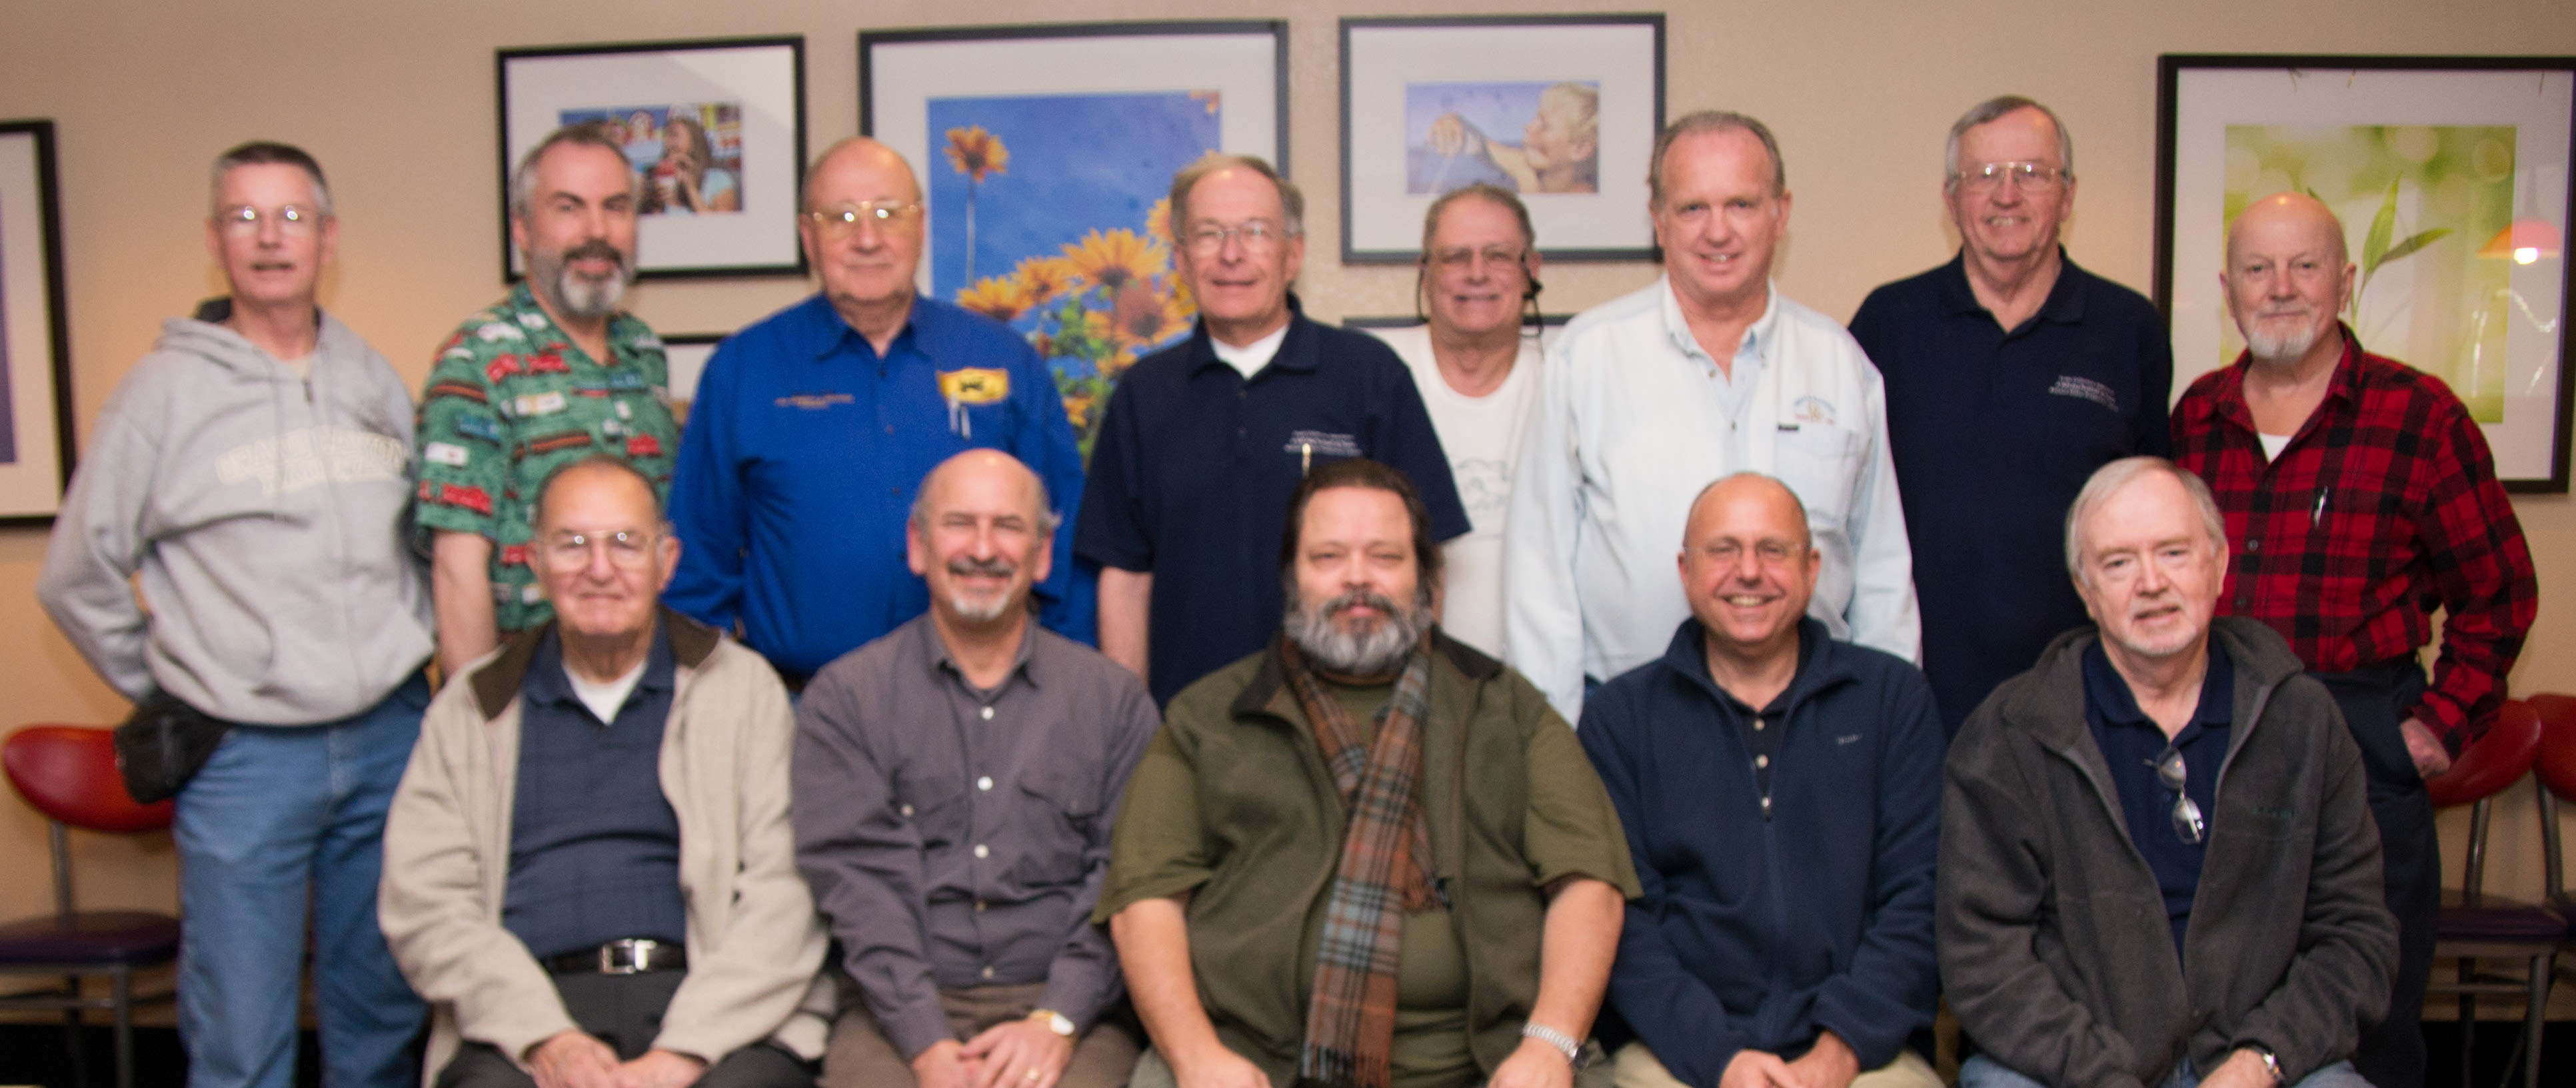 2011-12 Officers & Board of Directors: 